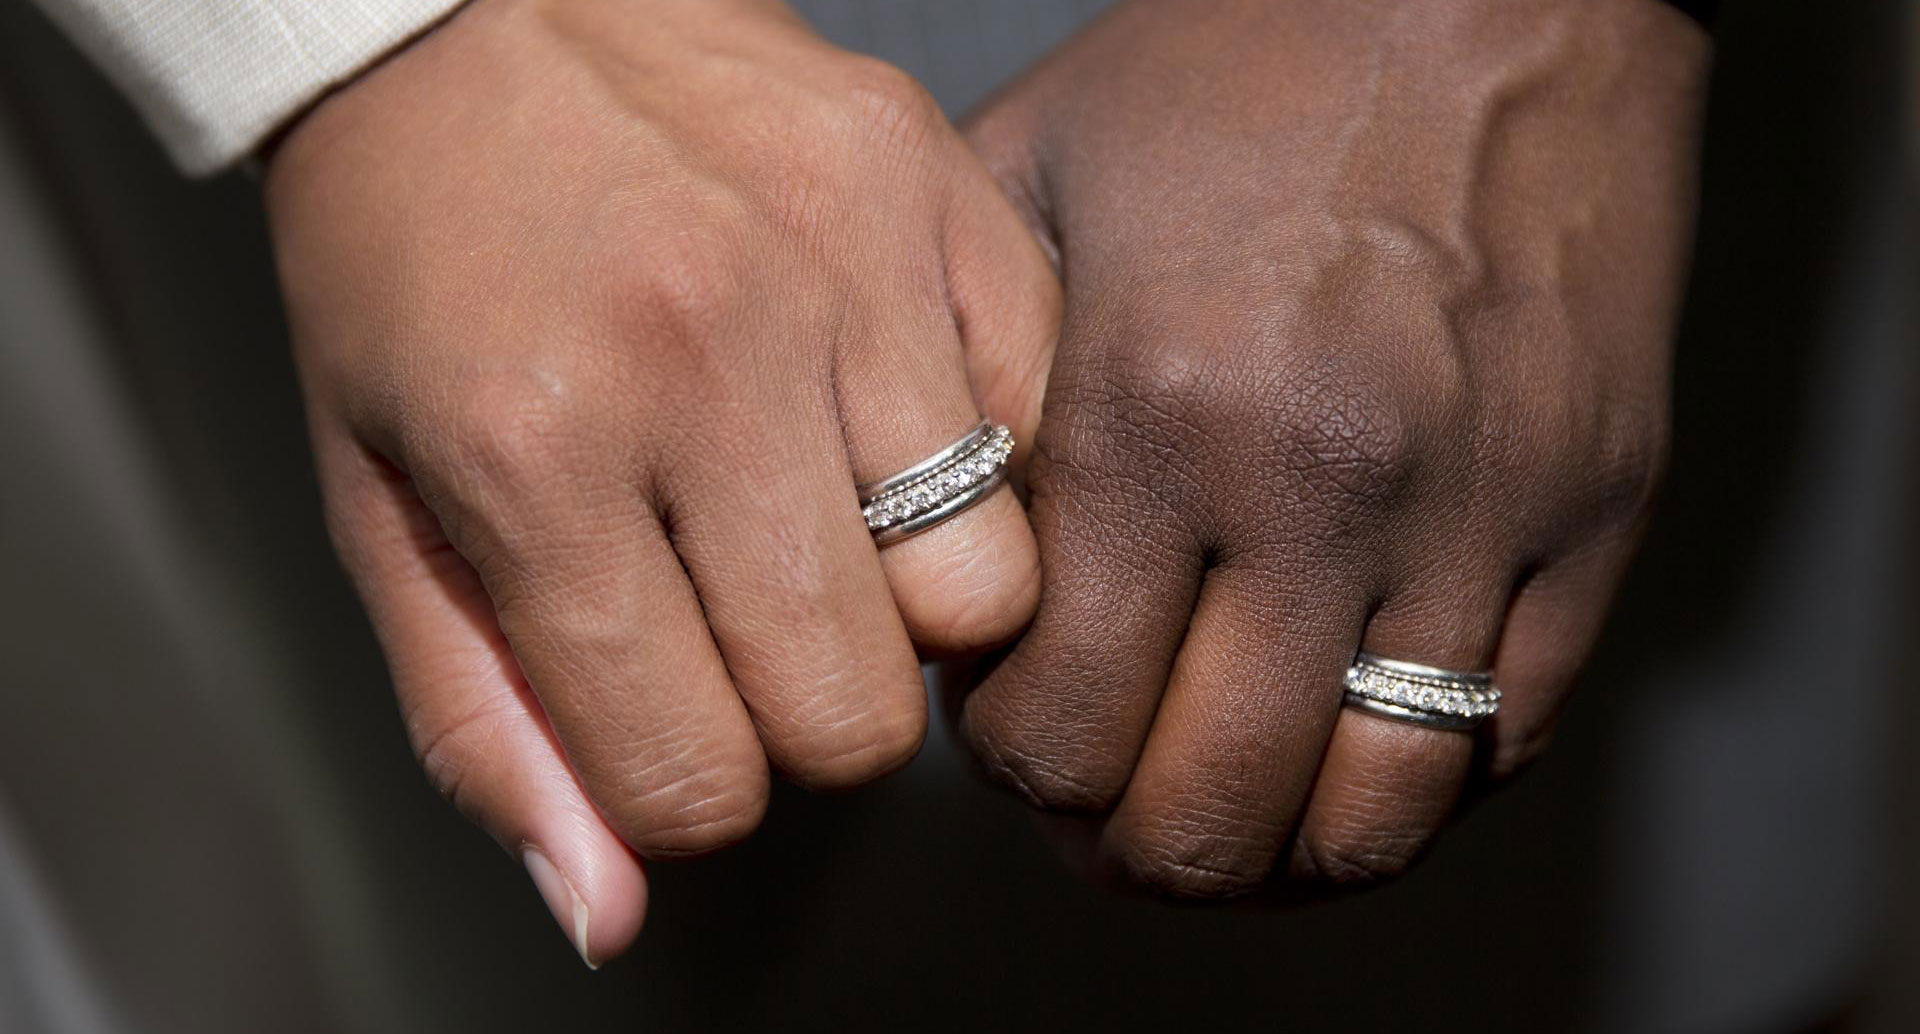 Man marries own mother-in-law after divorcing his wife of eight years